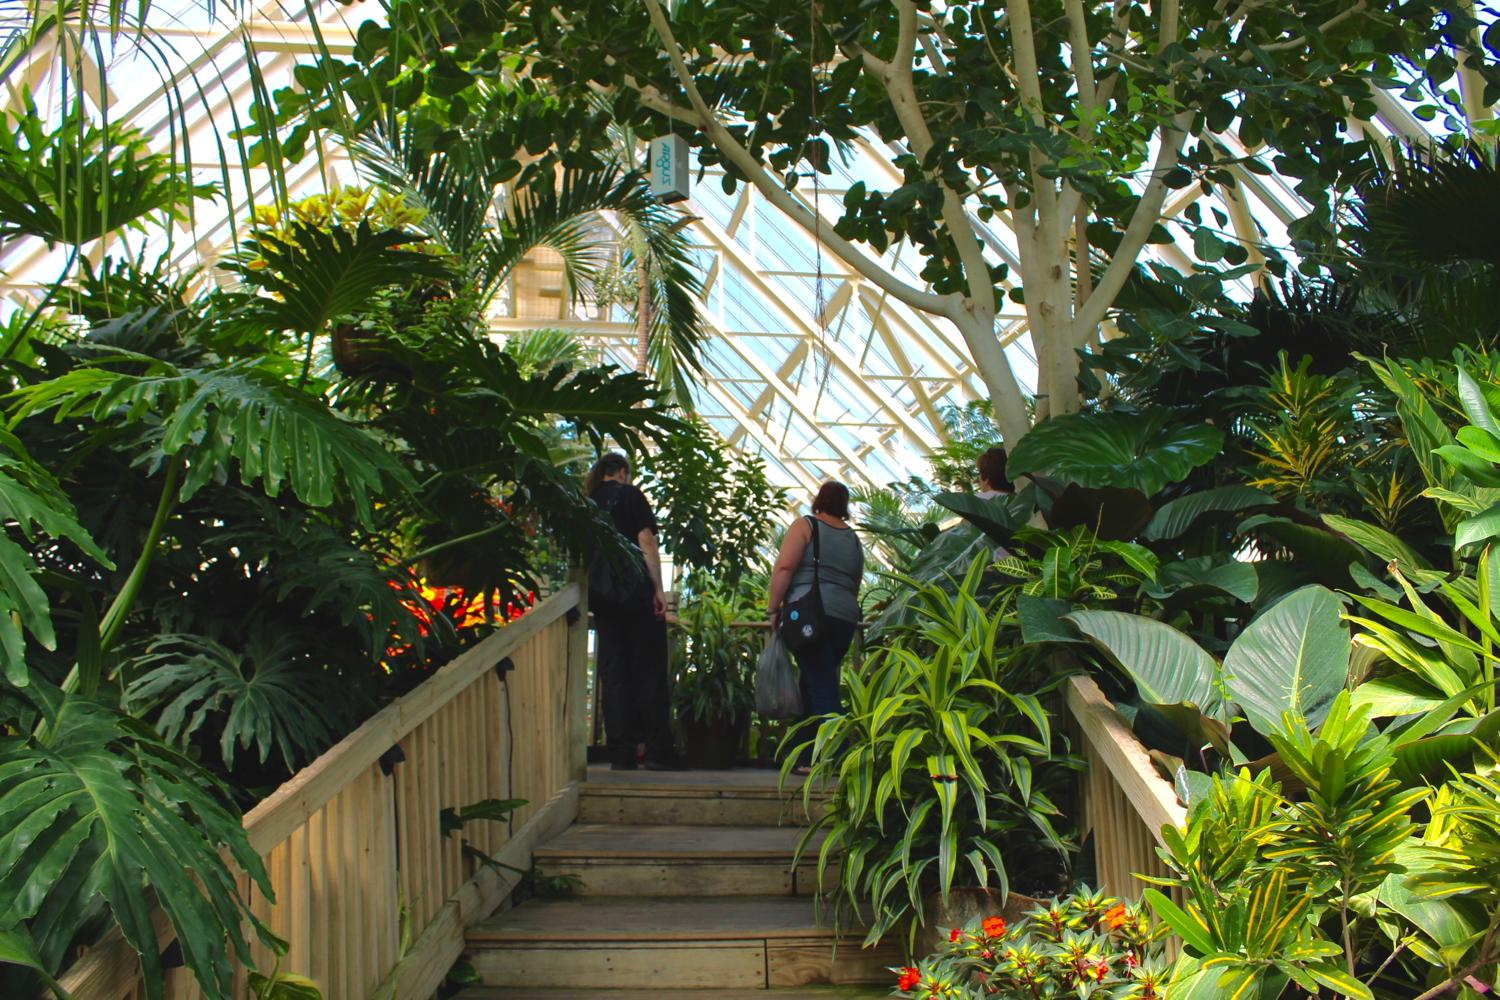 Franklin Park Conservatory and Botanical Gardens has a rich history dating back over 150 years. Originally, it was the site of the 1874 Ohio State Fair, and it's been open to the public as Franklin Park Conservatory since 1895. The Conservatory features several seasonal exhibitions, in addition to year-round displays. There's also a permanent collection of artist Dale Chihuly's glass artwork featured. It is 110 miles north of Cincinnati. ADDRESS: 1777 E Broad St., Columbus, OH (43203) / Image: Rose Brewington // Published: 8.20.17